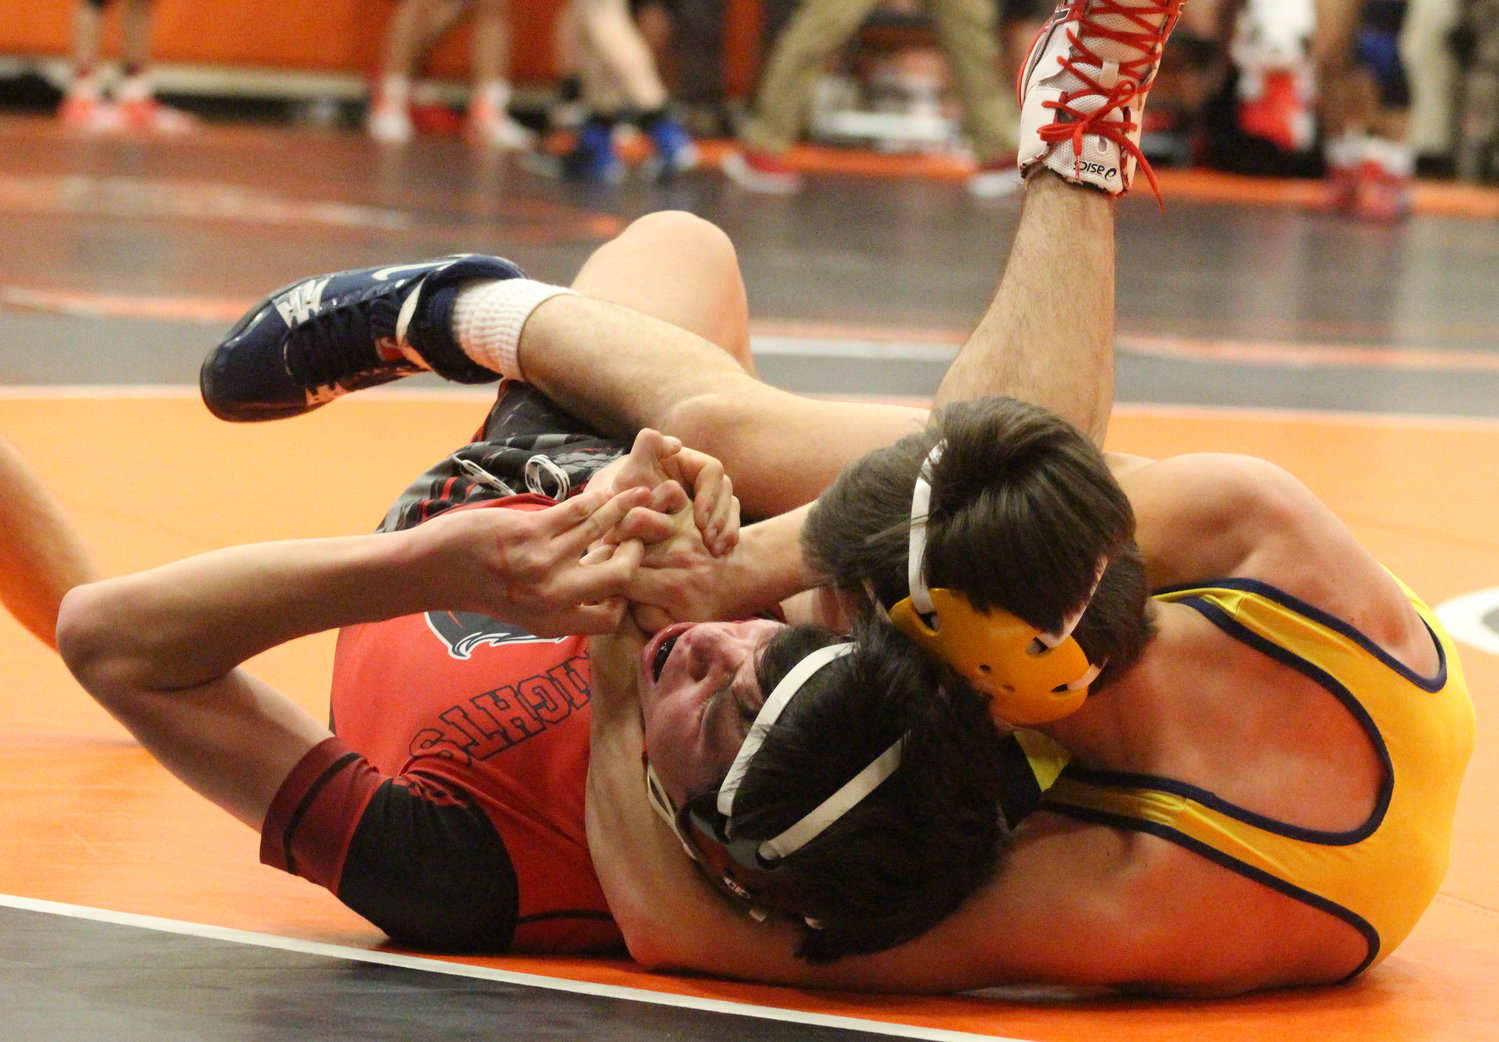 Ryan Berstler pins Joe Giesen from Reading in the Snacktown Duals in Hanover.